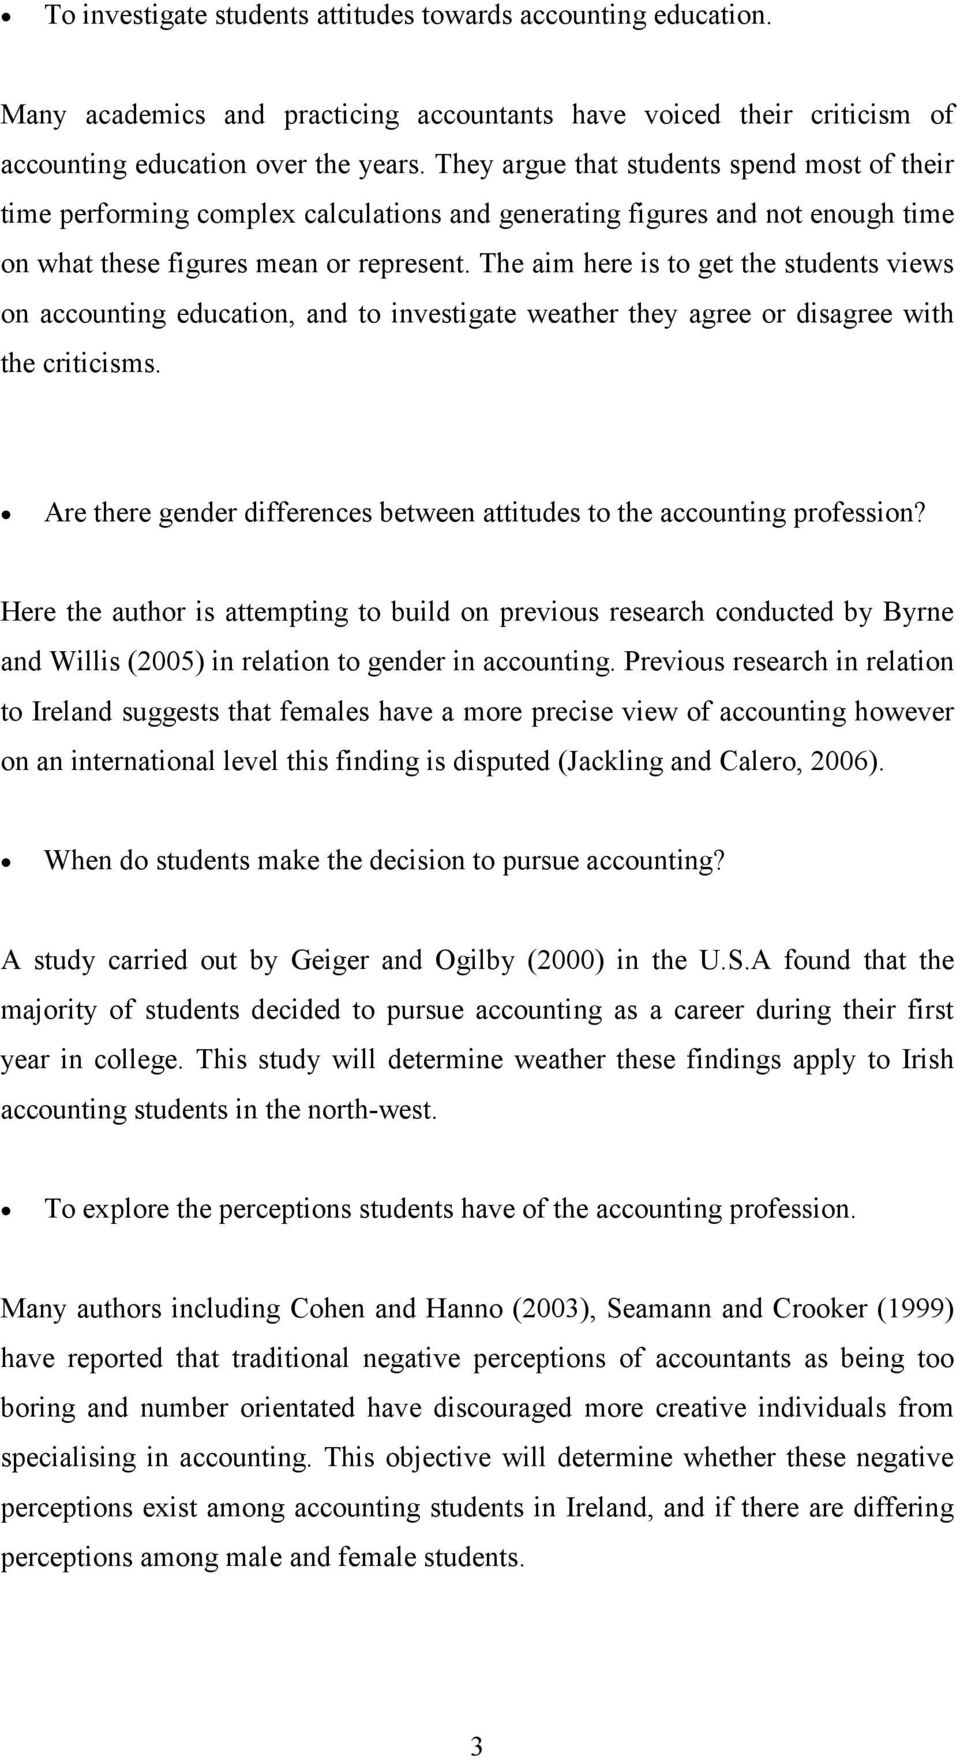 what influences accounting student s attitudes towards the the aim here is to get the students views on accounting education and to investigate